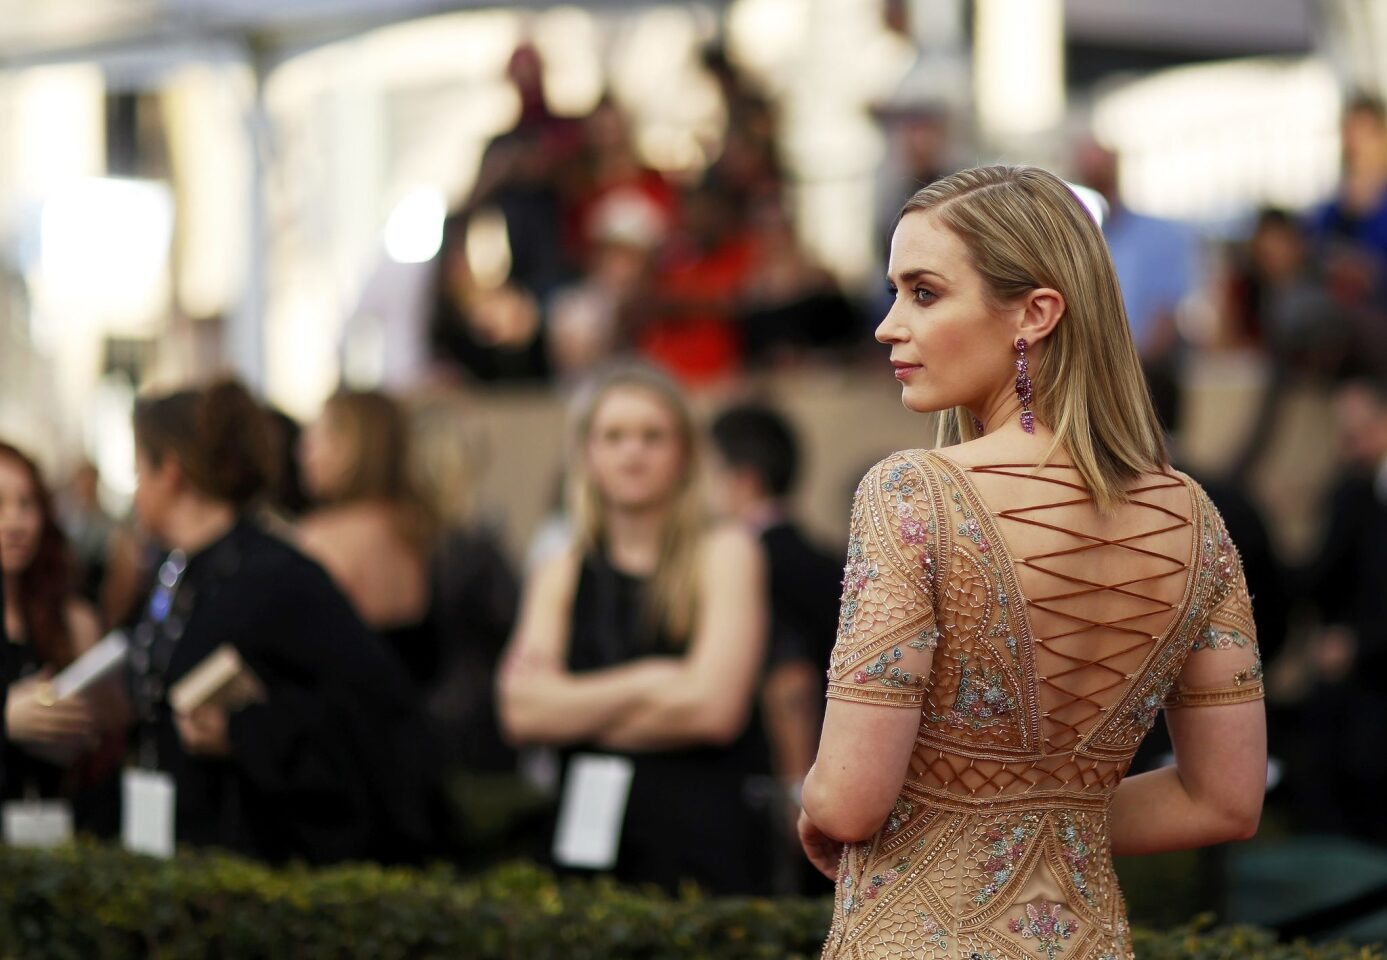 Actress Emily Blunt arrives at the 23rd Screen Actors Guild Awards in Los Angeles, California, U.S., January 29, 2017. REUTERS/Mario Anzuoni ** Usable by SD ONLY **